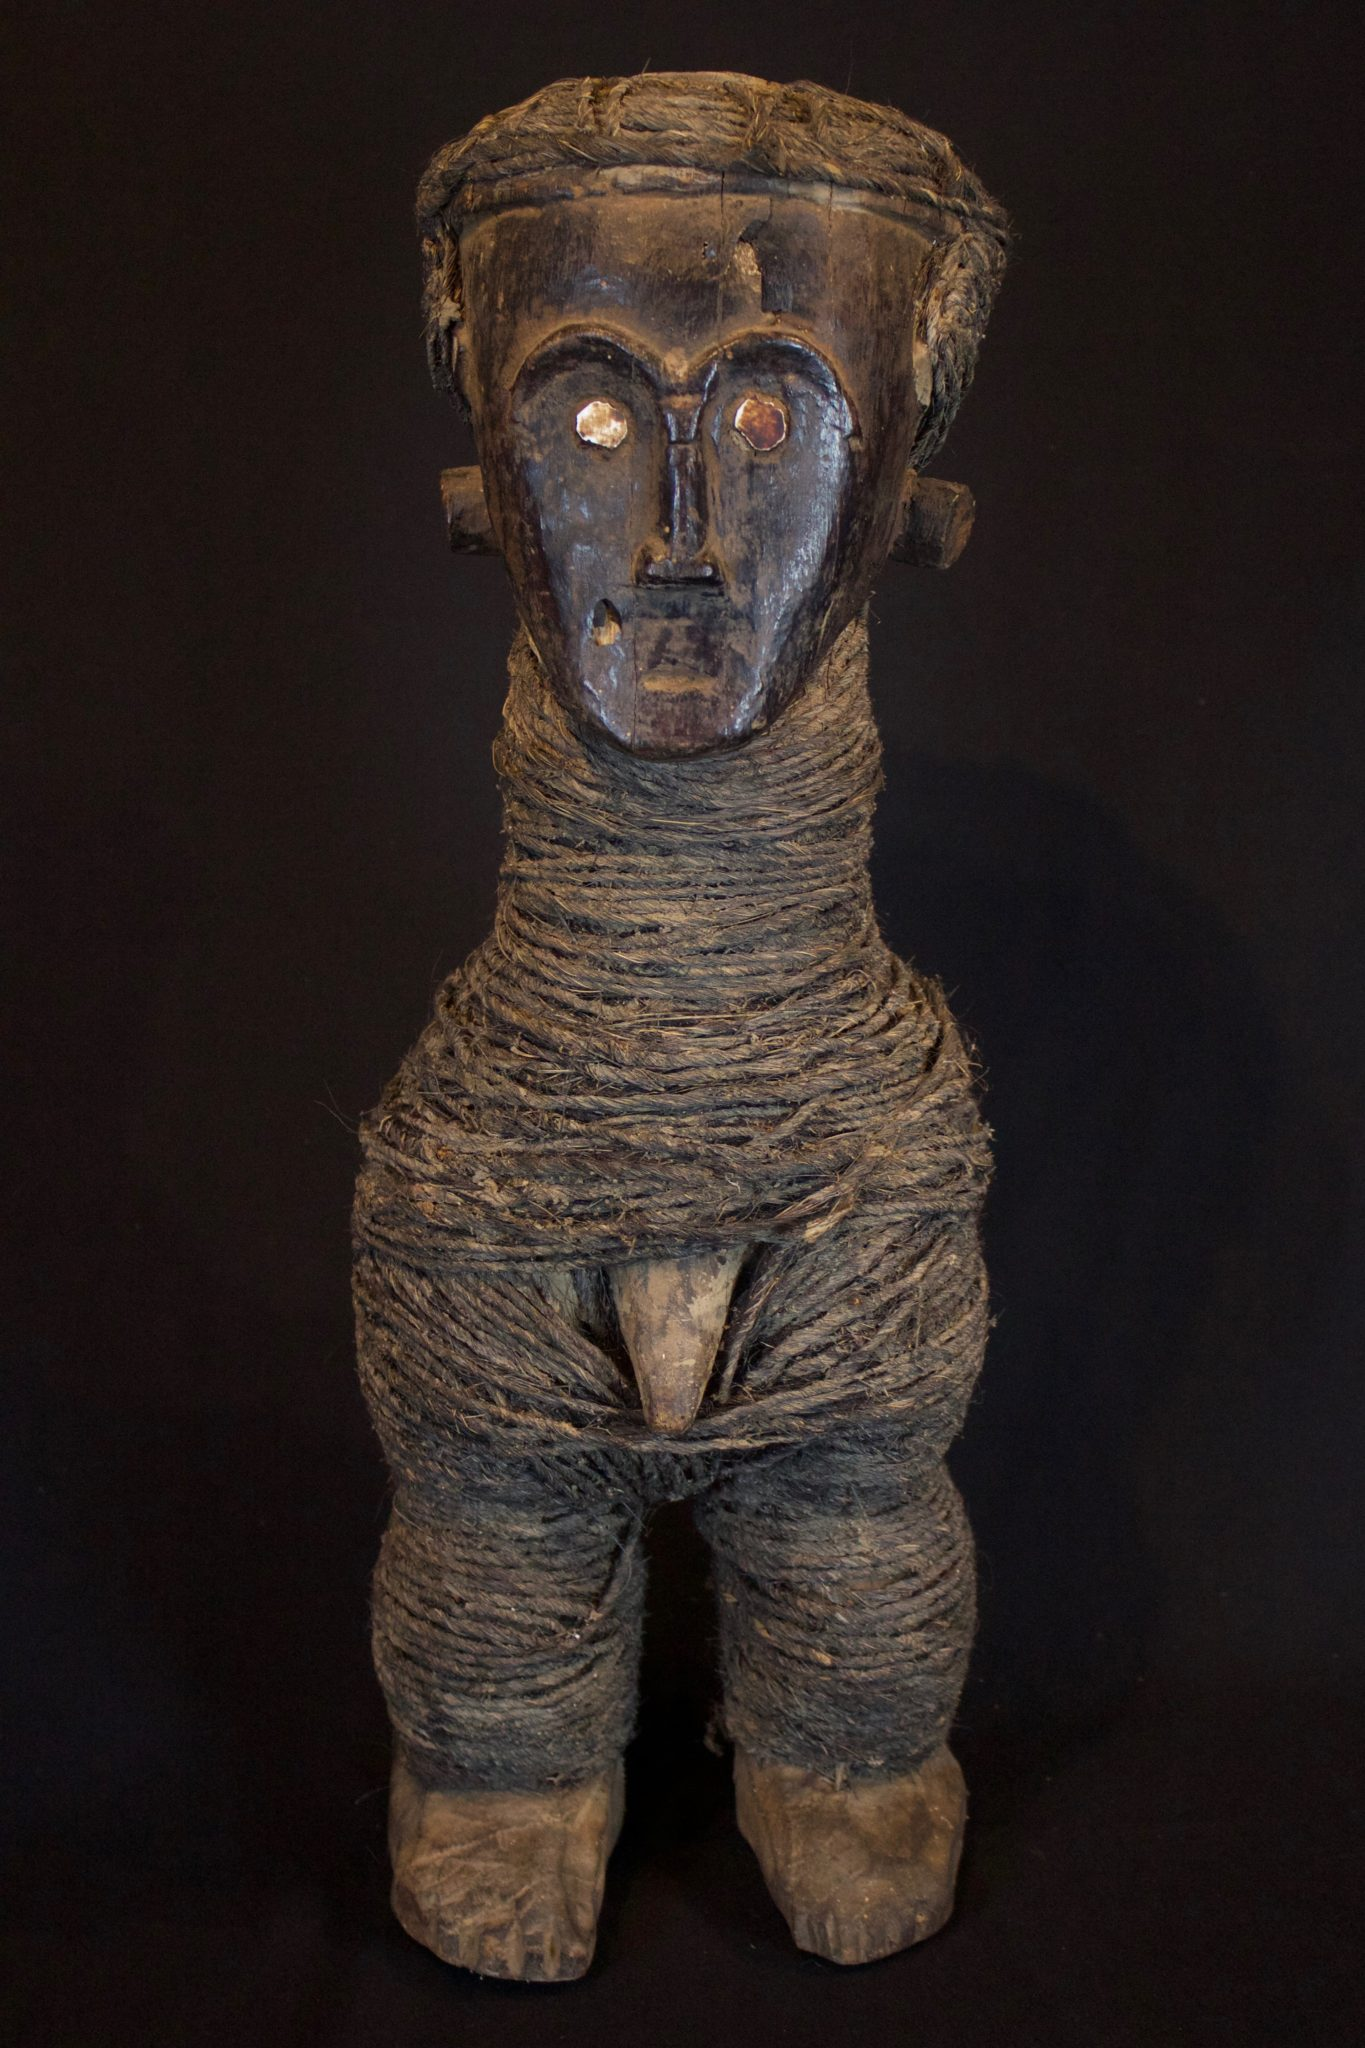 """Shaman's Ritual Figure, Timor Island, Sunda Island, Indonesia, Niki Niki village Early 20th c, Wood, fiber cord, shell. Used by shaman to treat people as well as for other traditional rituals. 21"""" x 7 ½"""" x 6 ½"""", $1400."""